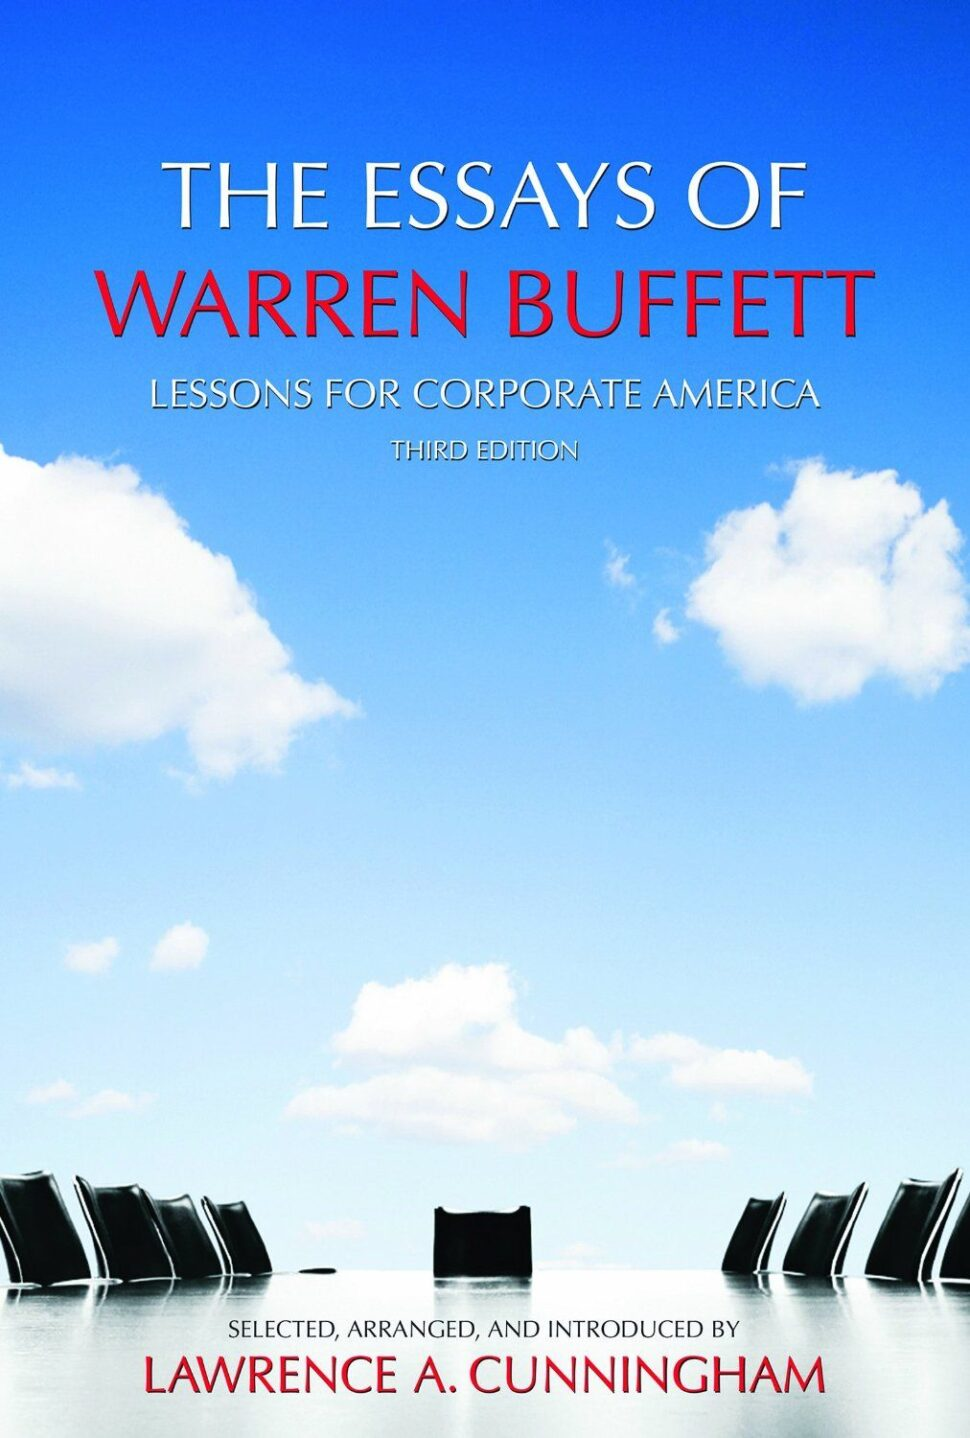 Large Size of The Essays Of Warren Buffett Lessons For Corporate America Third Edition Essay